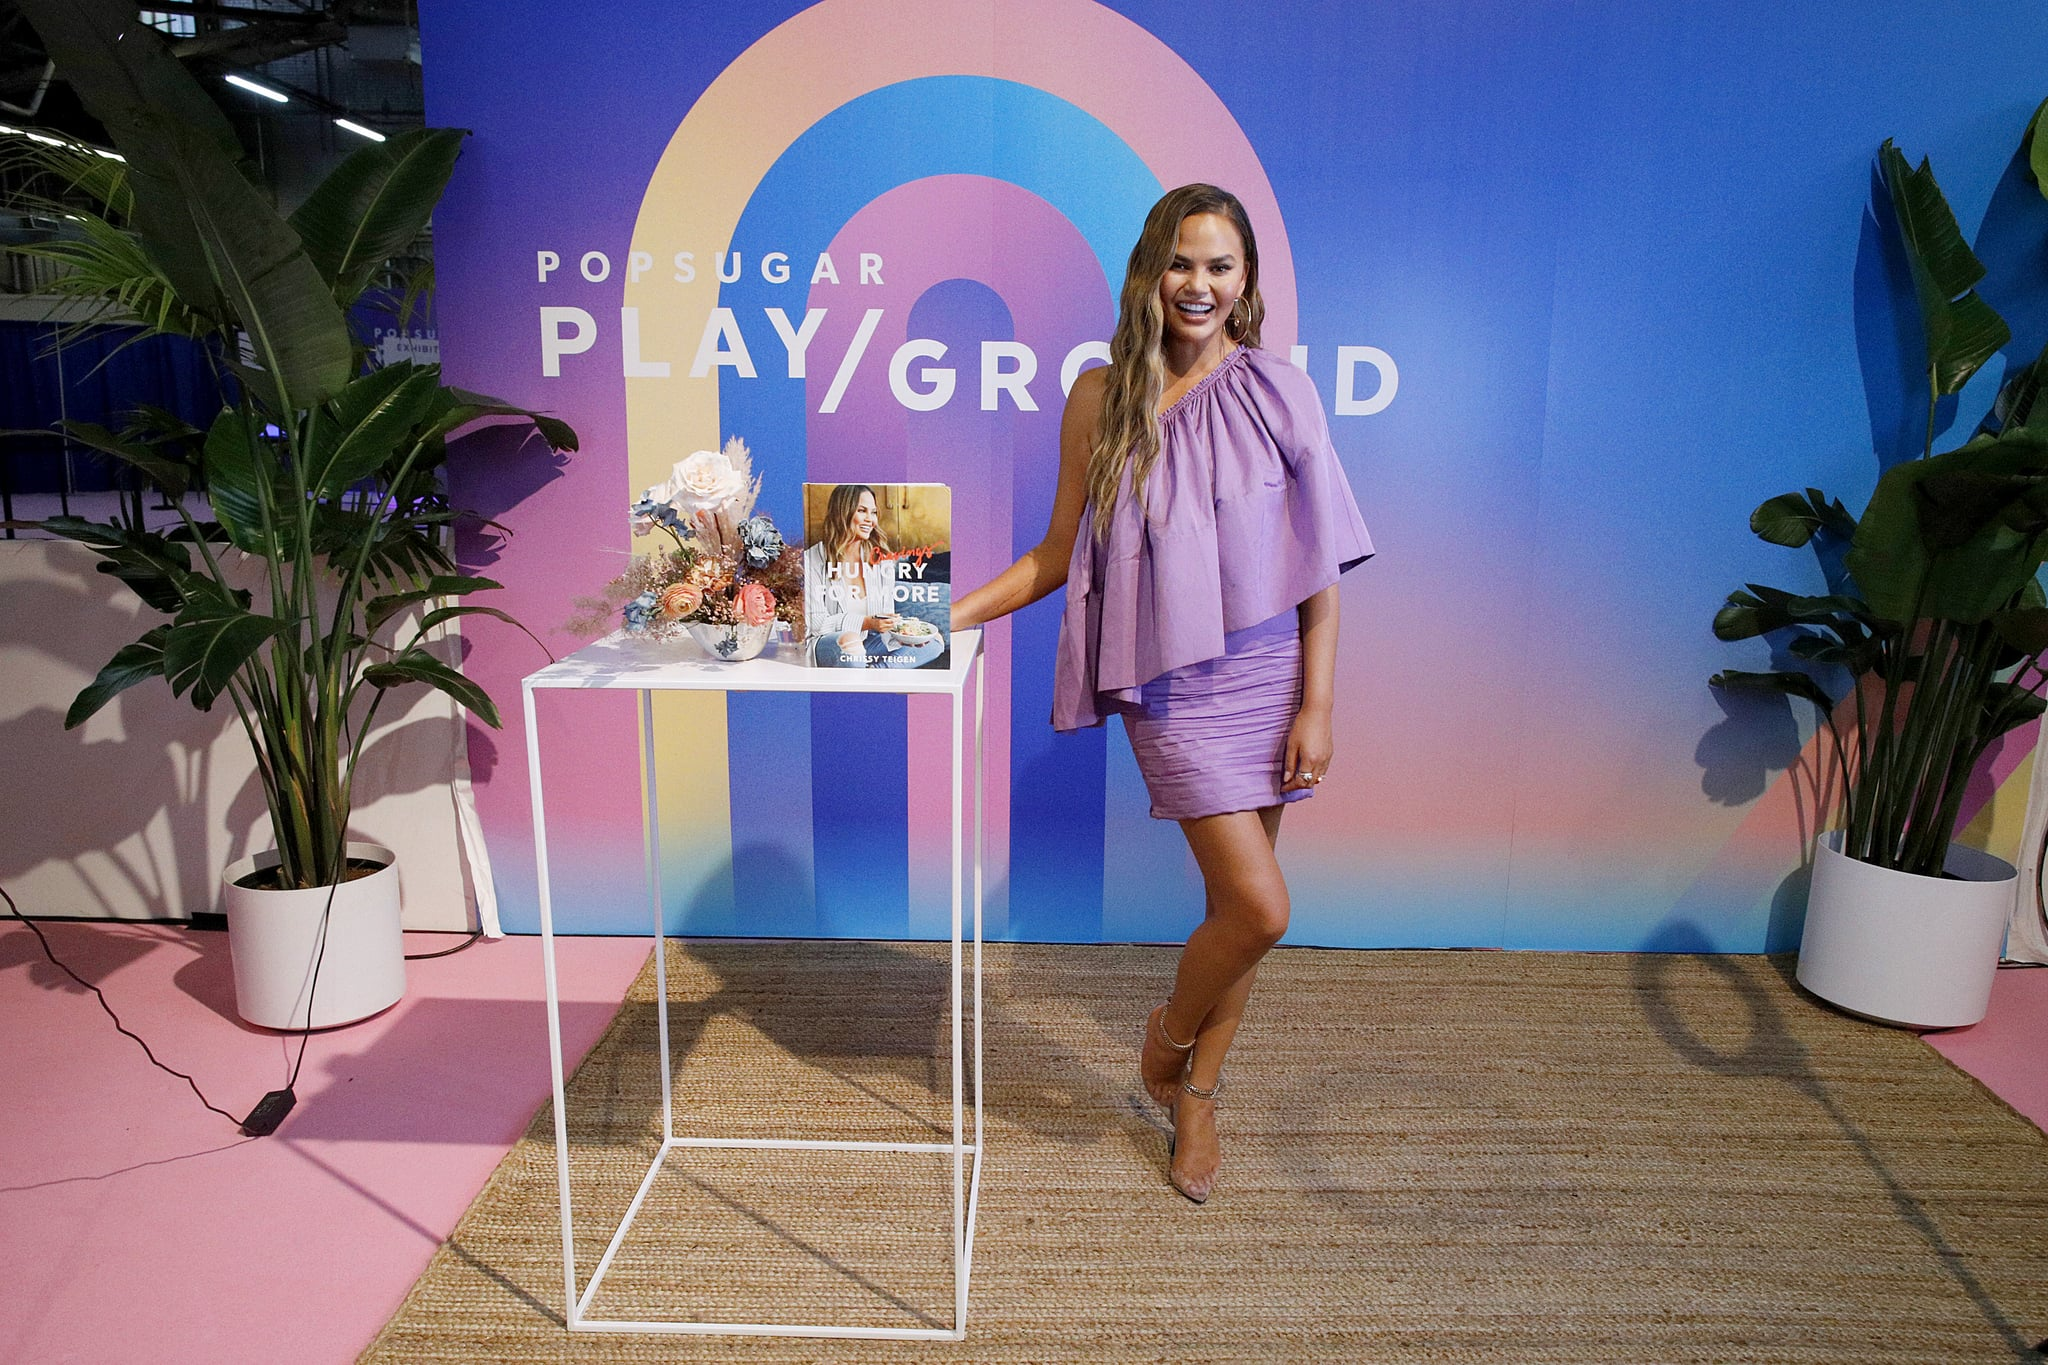 NEW YORK, NEW YORK - JUNE 23: Chrissy Teigen poses with her cookbook during POPSUGAR Play/Ground at Pier 94 on June 23, 2019 in New York City. (Photo by Lars Niki/Getty Images for POPSUGAR and Reed Exhibitions )